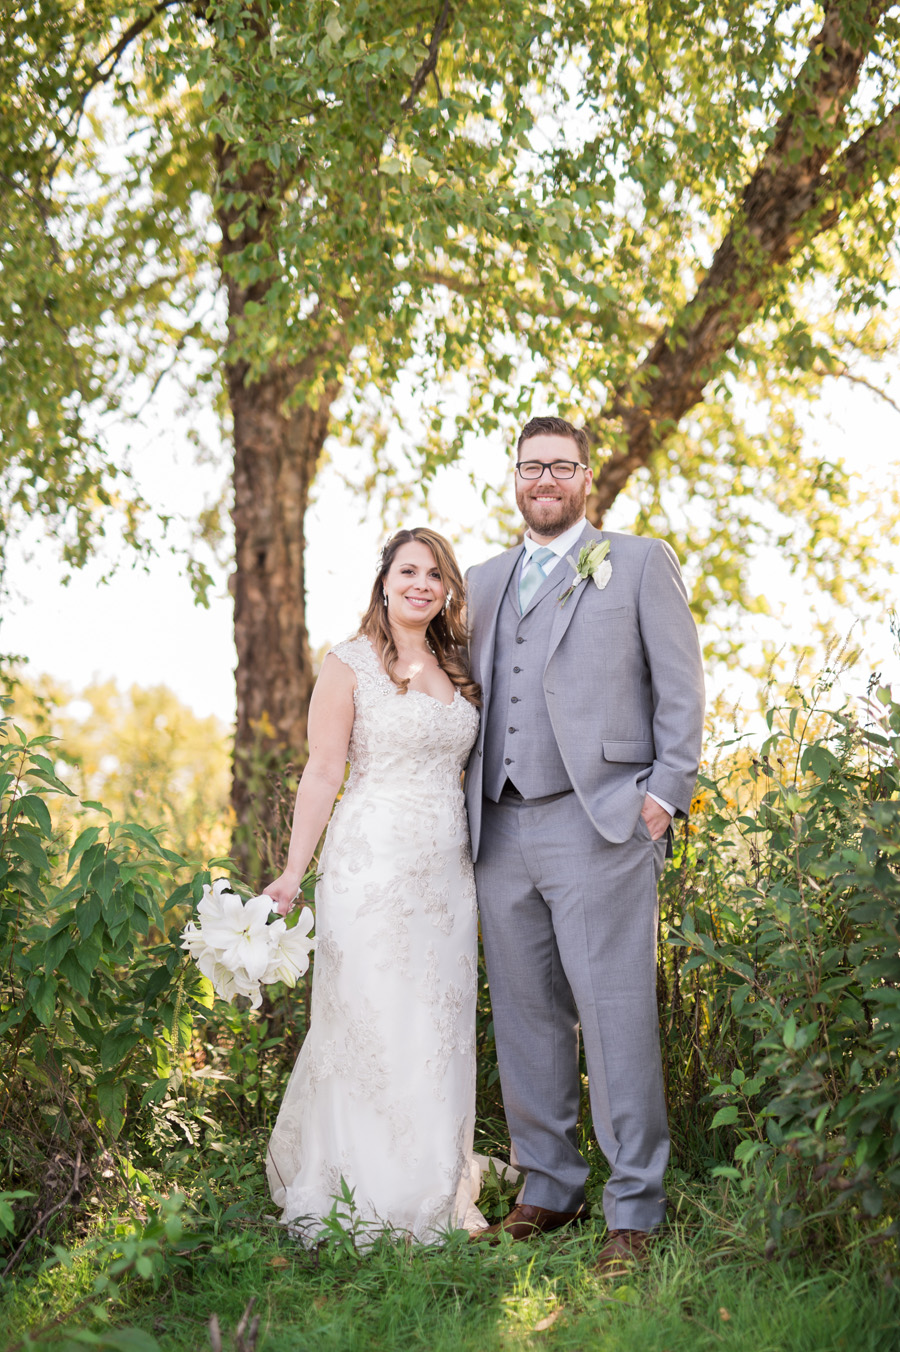 Portrait of bride and groom in St. Charles, IL.